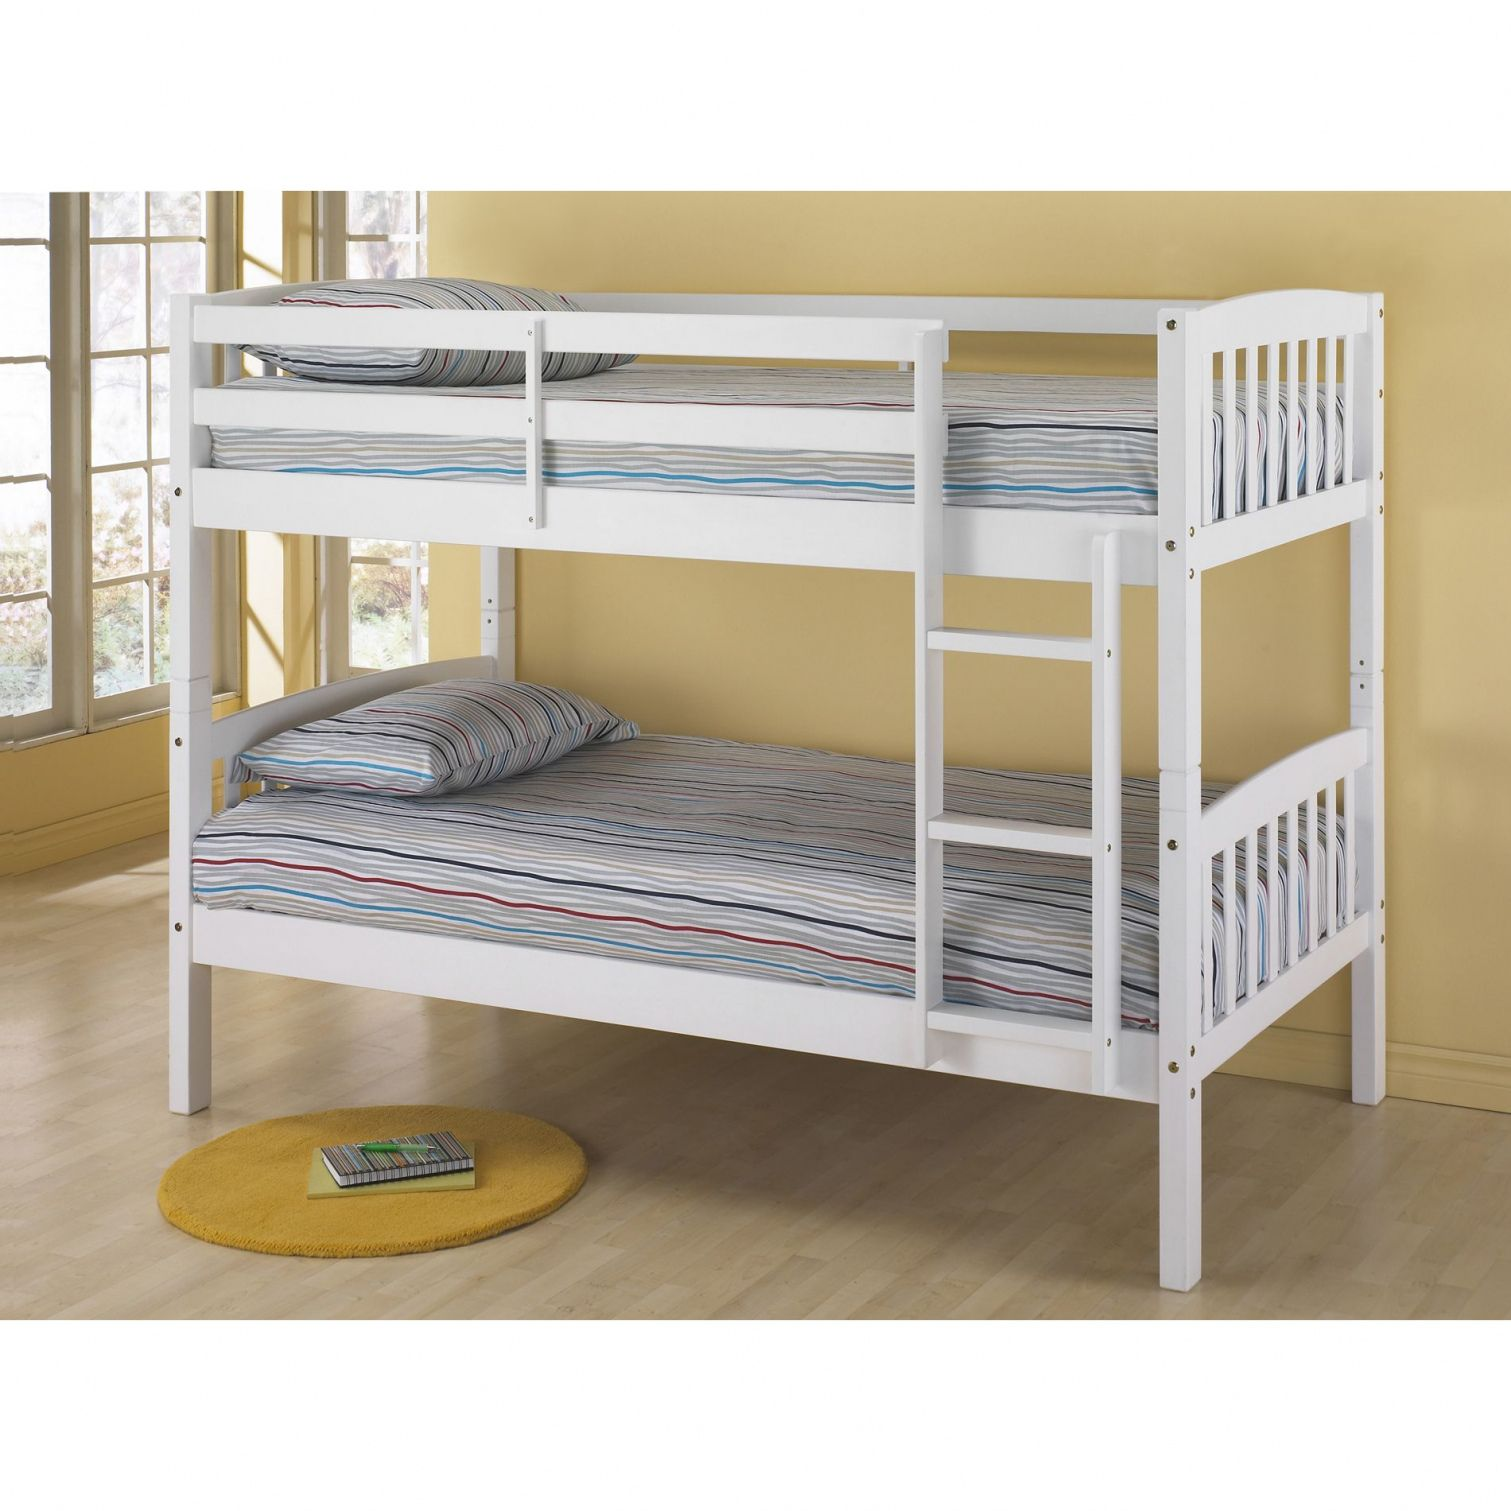 White Twin Bunk Beds Favorite Interior Paint Colors Check more